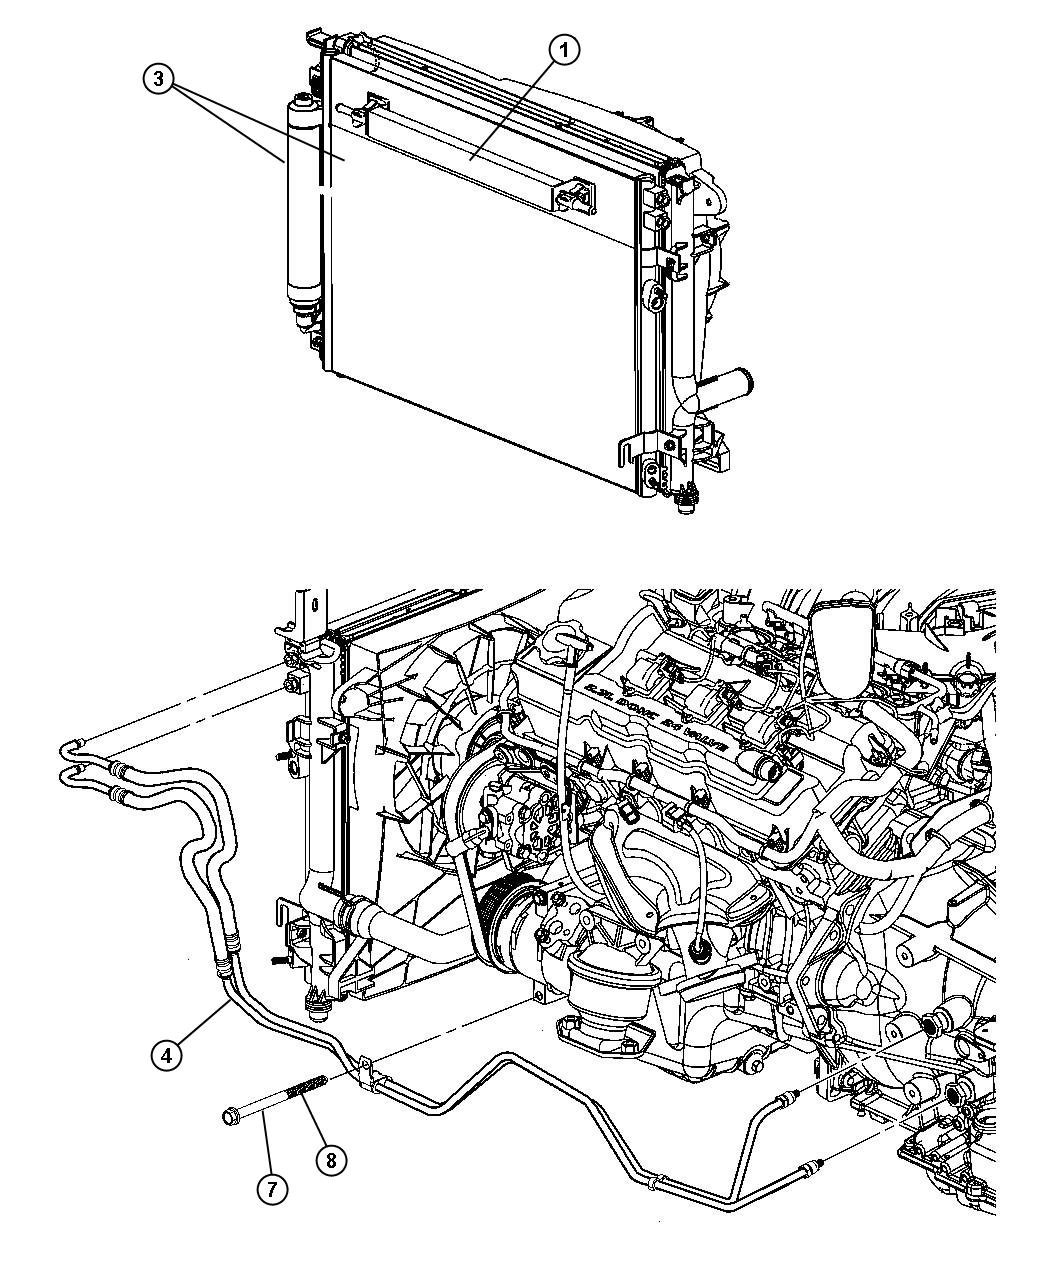 Service manual [Transmission Cooler Line 2011 Dodge